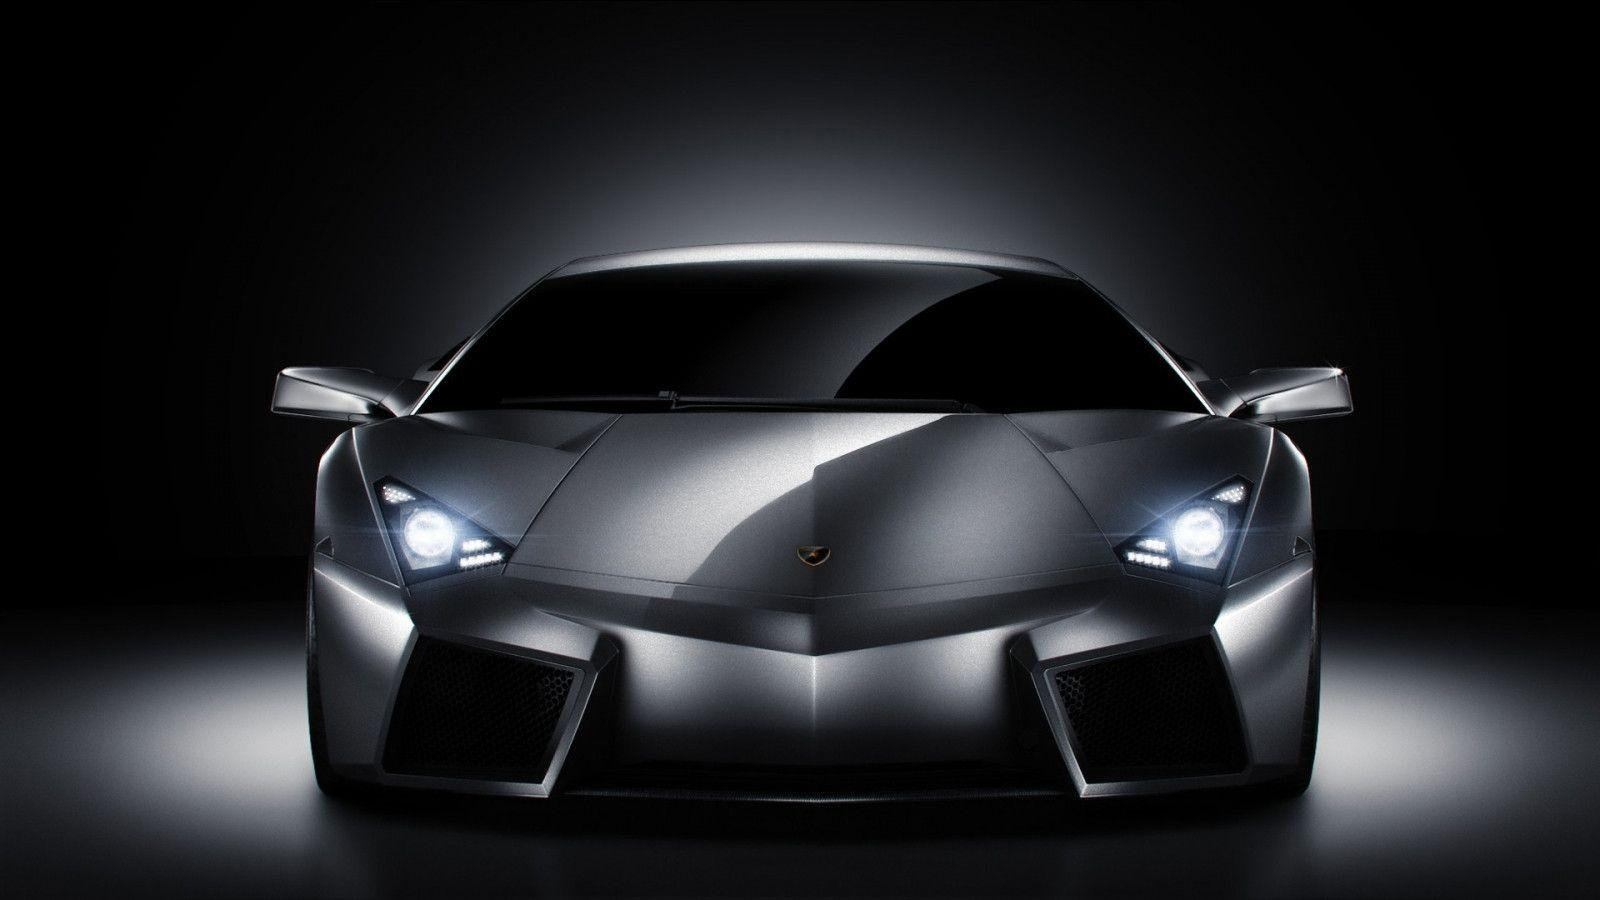 Lamborghini Wallpapers Hd 1080p Wallpaper Cave